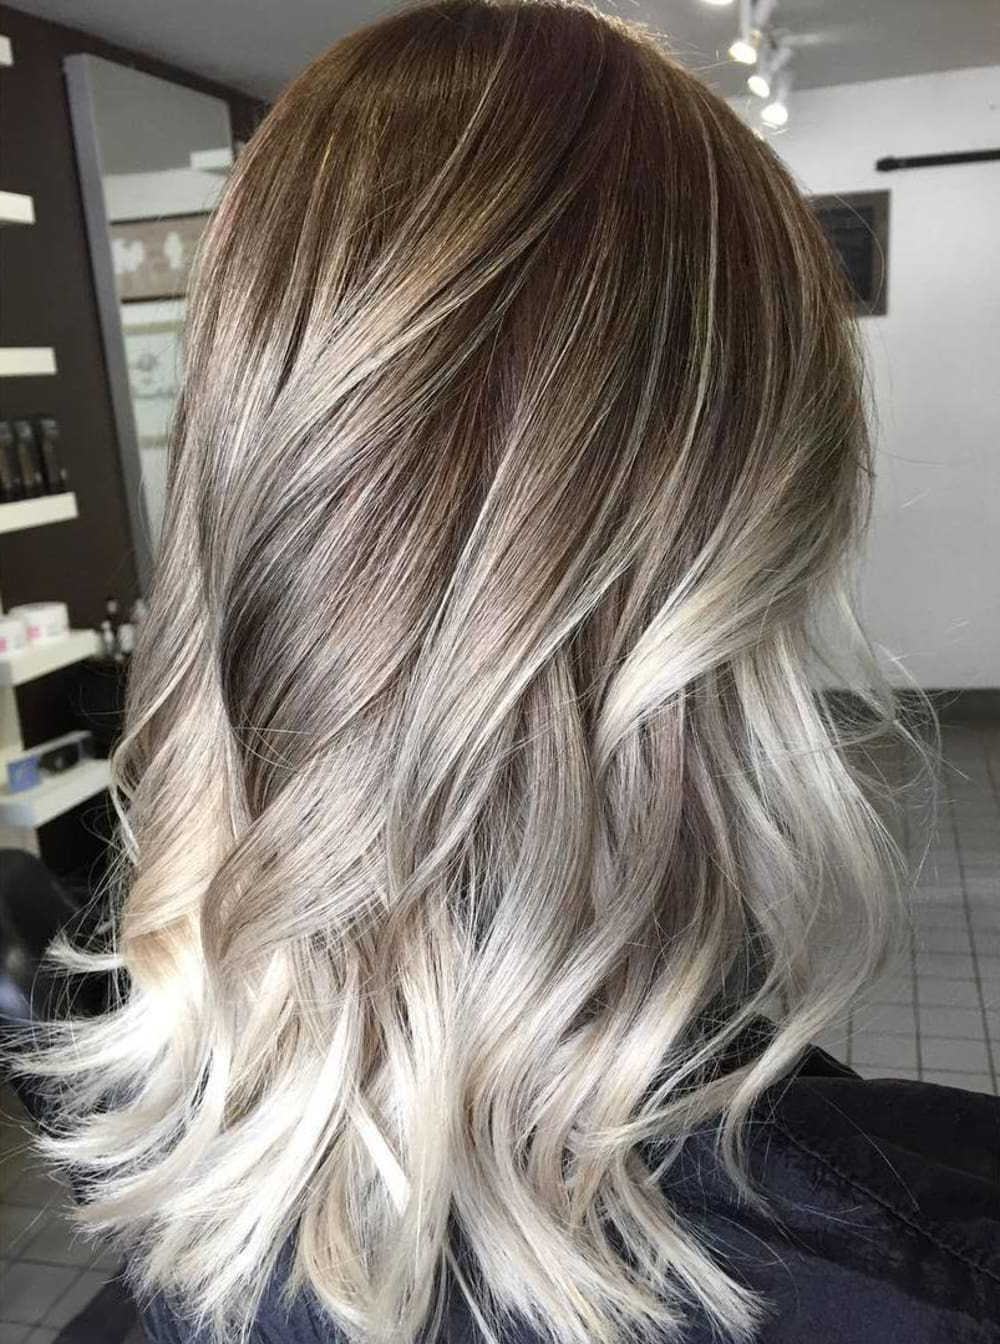 25 Blonde Highlights For Women To Look Sensational – Haircuts Intended For Preferred Medium Haircuts With Red And Blonde Highlights (View 17 of 20)